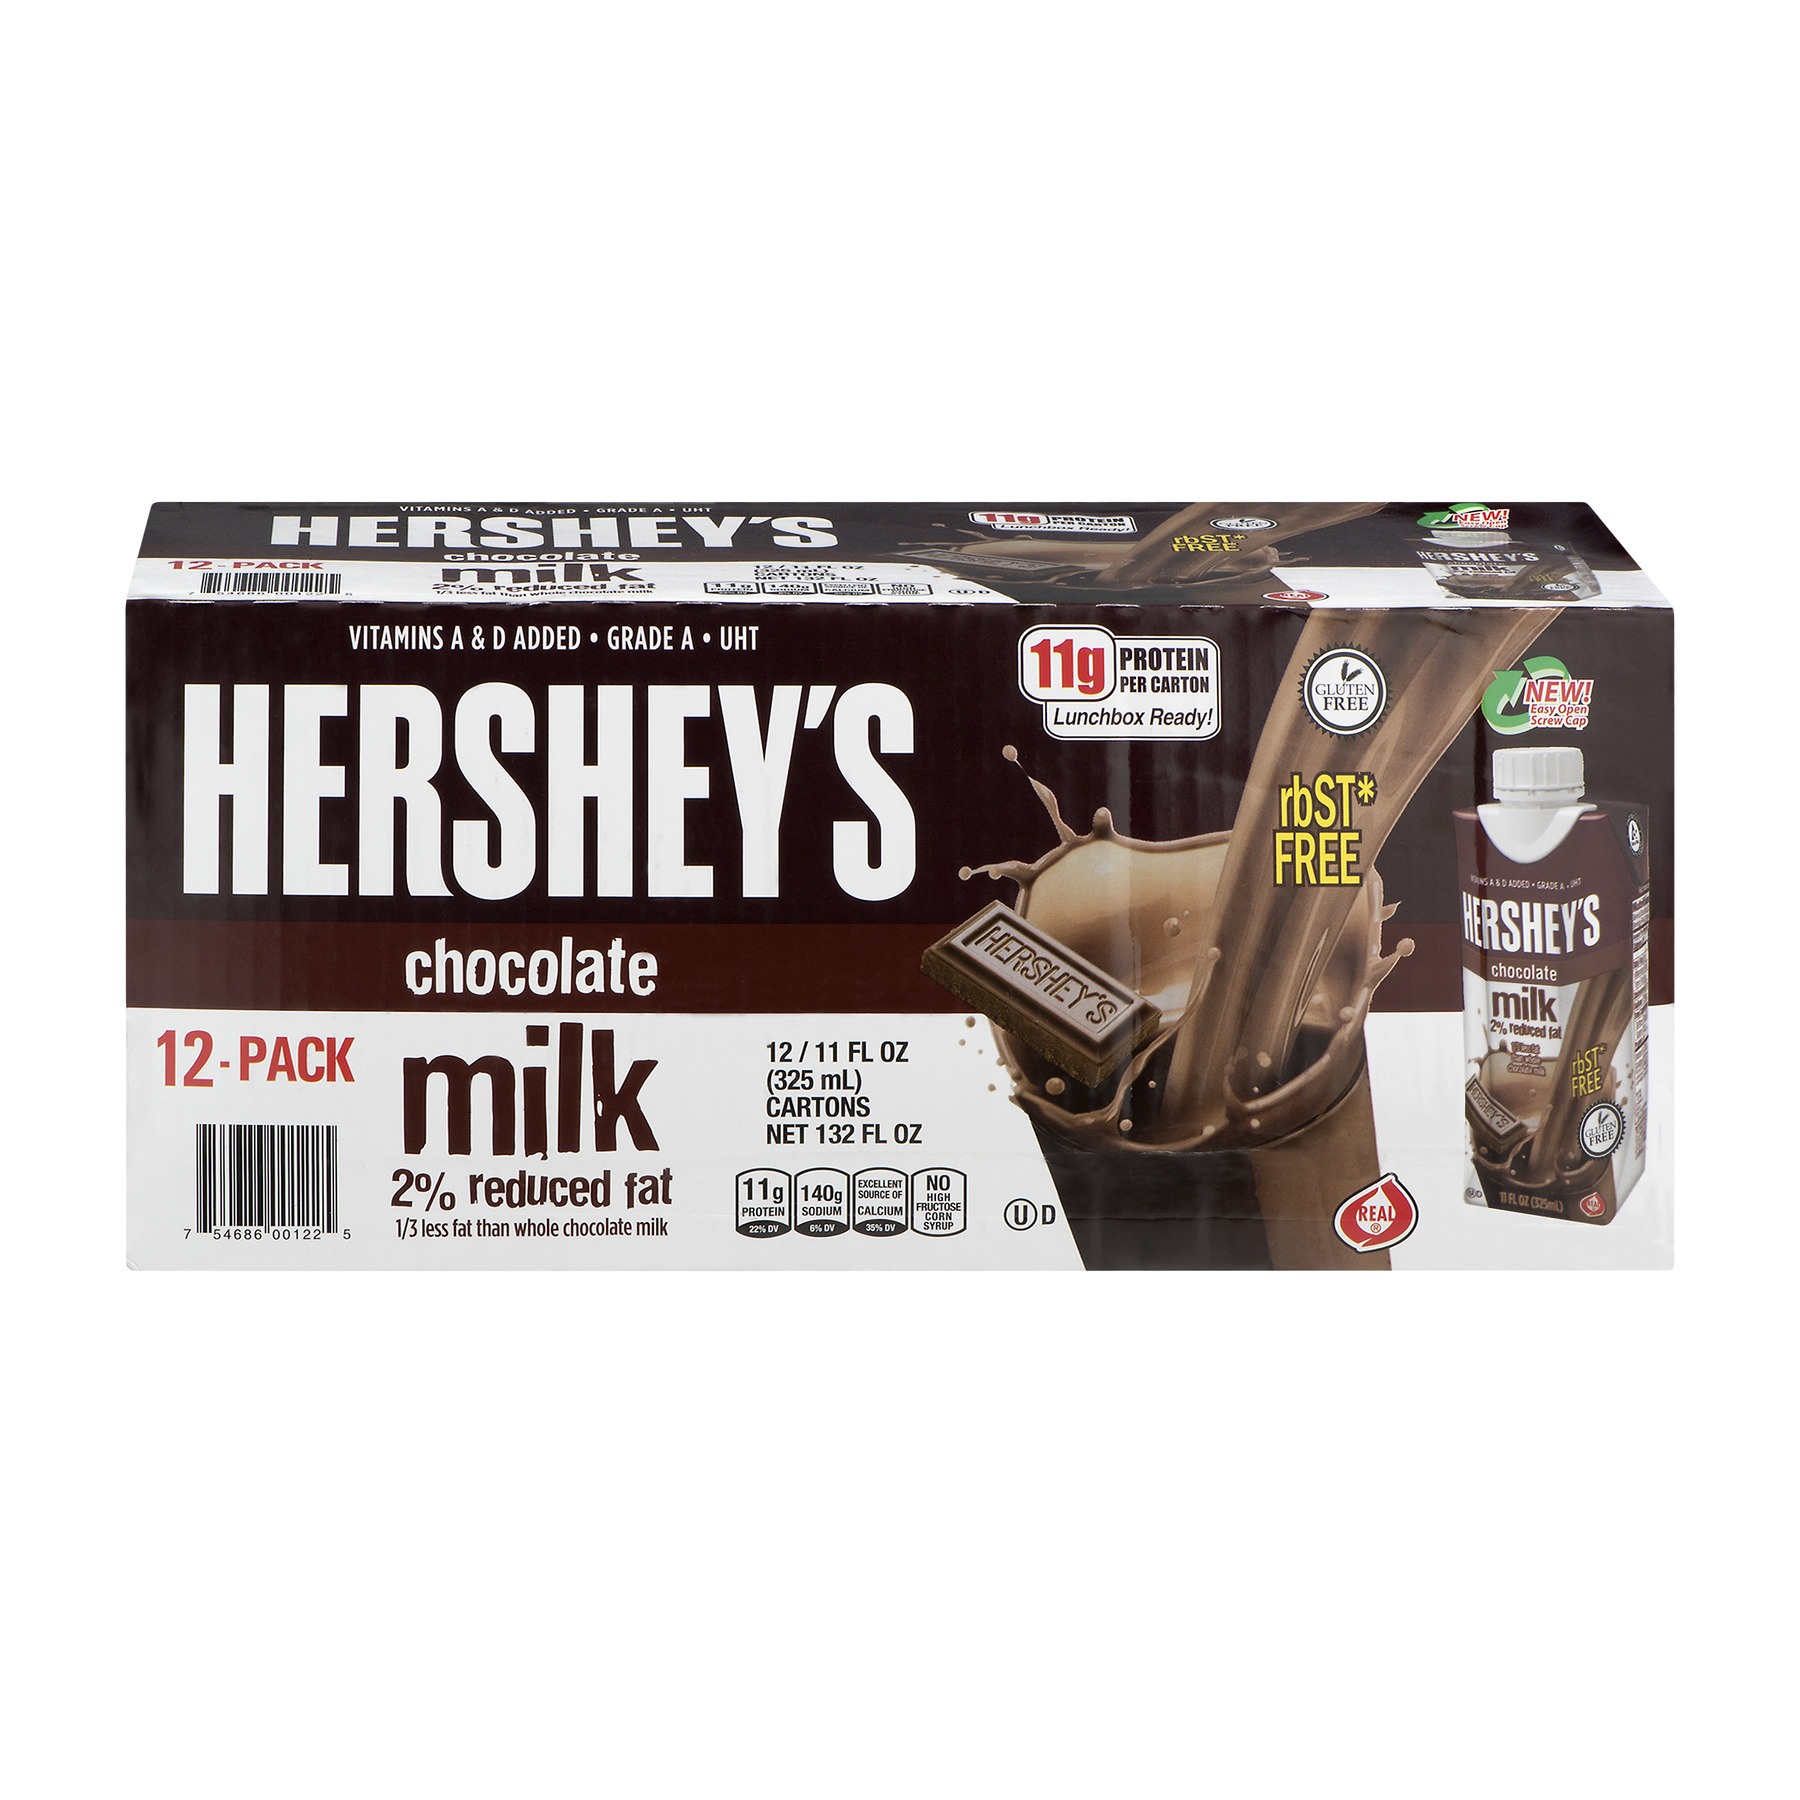 Hershey's Chocolate 2% Reduced Fat Milk, 11 fl oz, (Pack of 12)